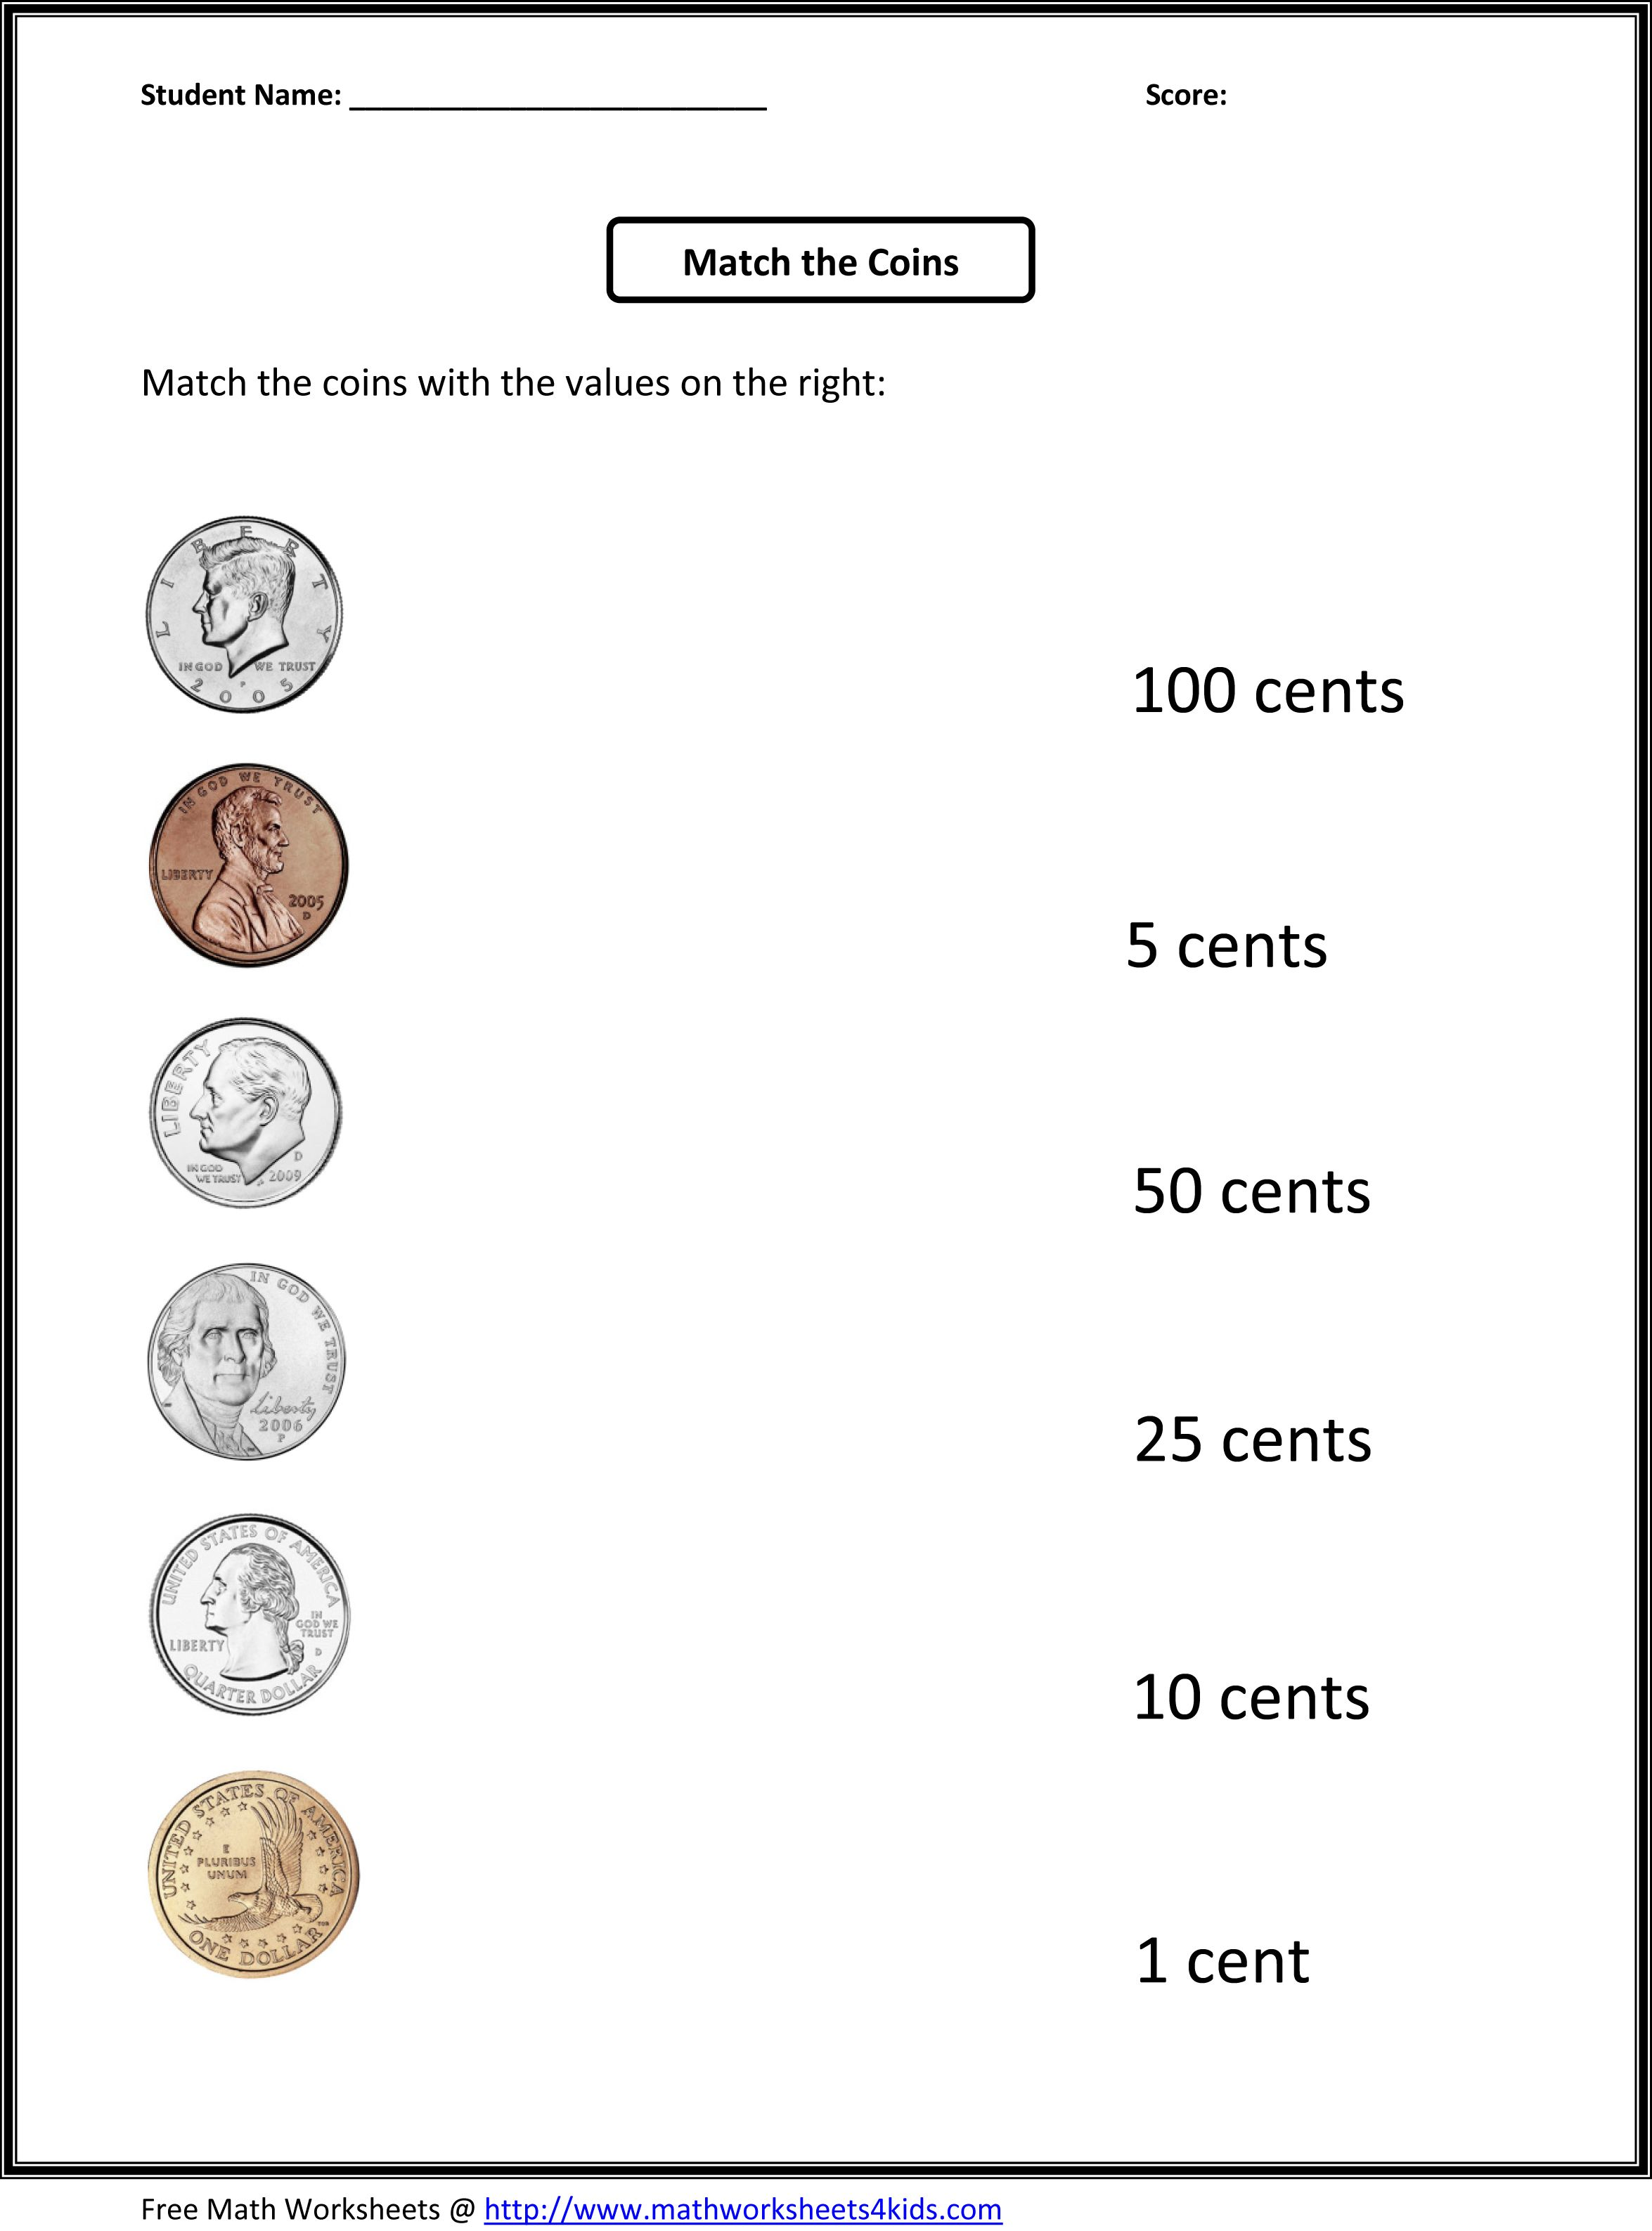 Worksheets Free Math Worksheets For 1st Graders free 1st grade worksheets match the coins and its values values